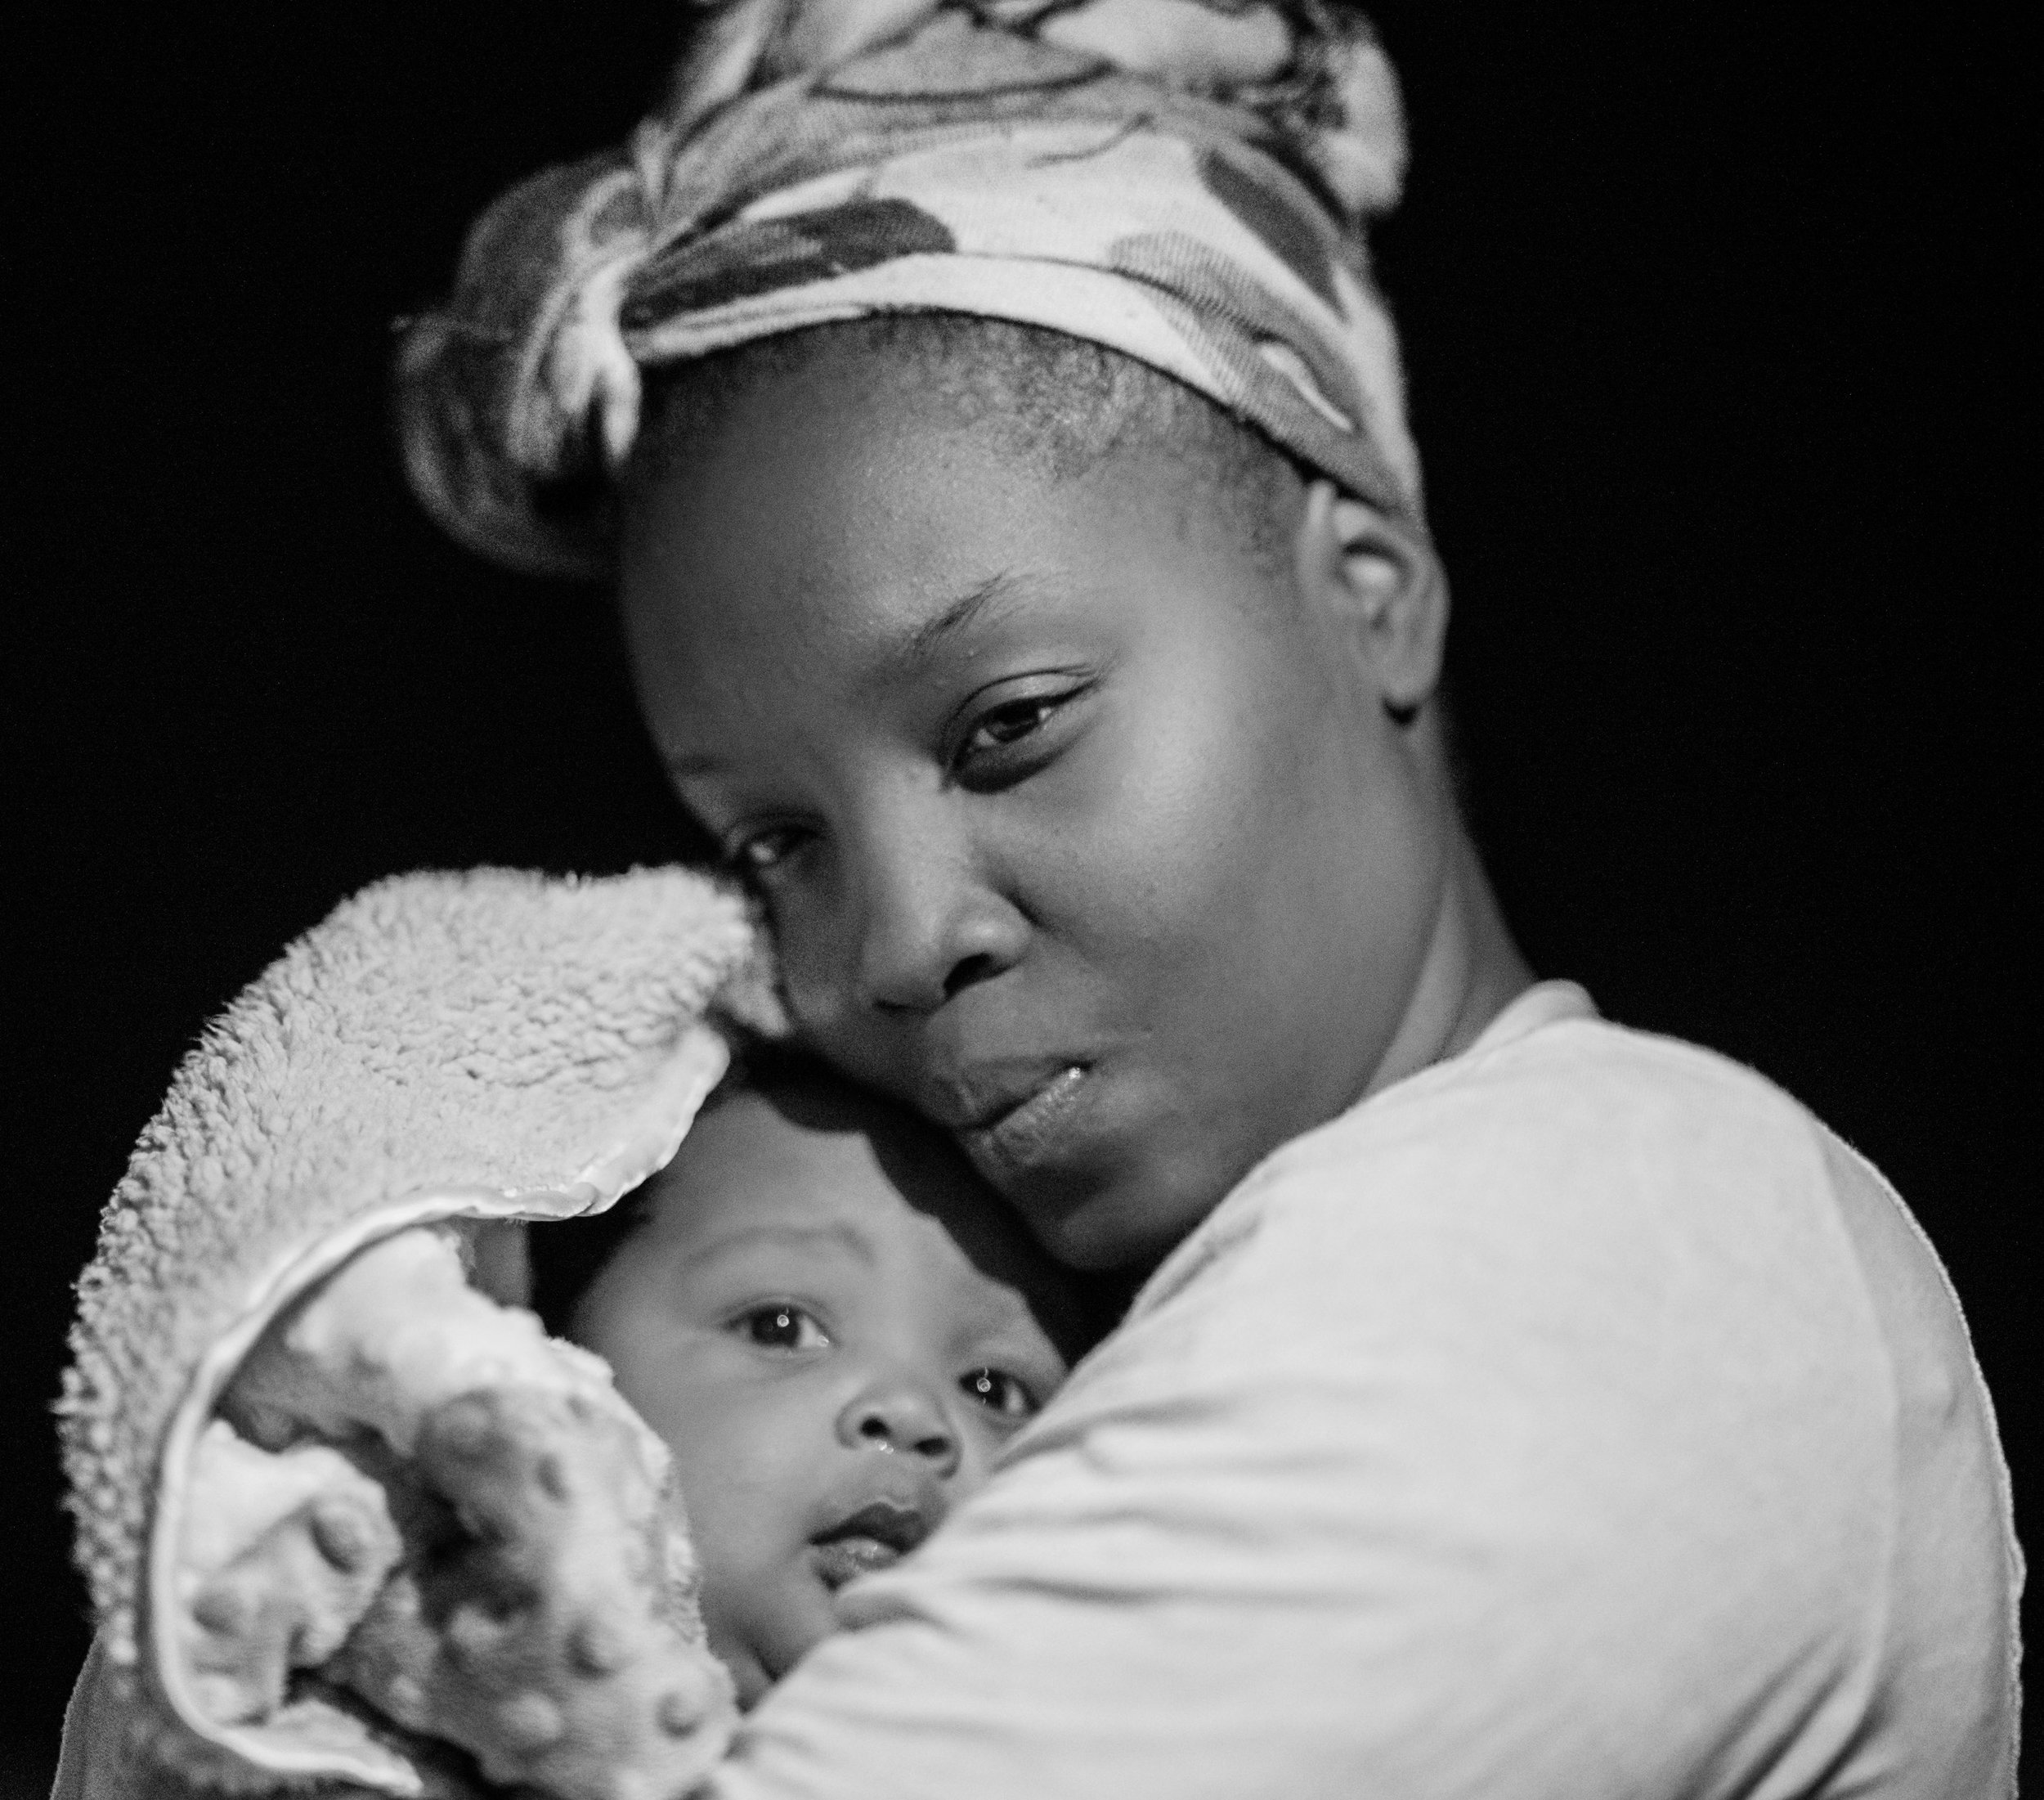 - Doulas are increasingly being used as a way to decrease healthcare disparities, which are especially prevalent during the perinatal year.